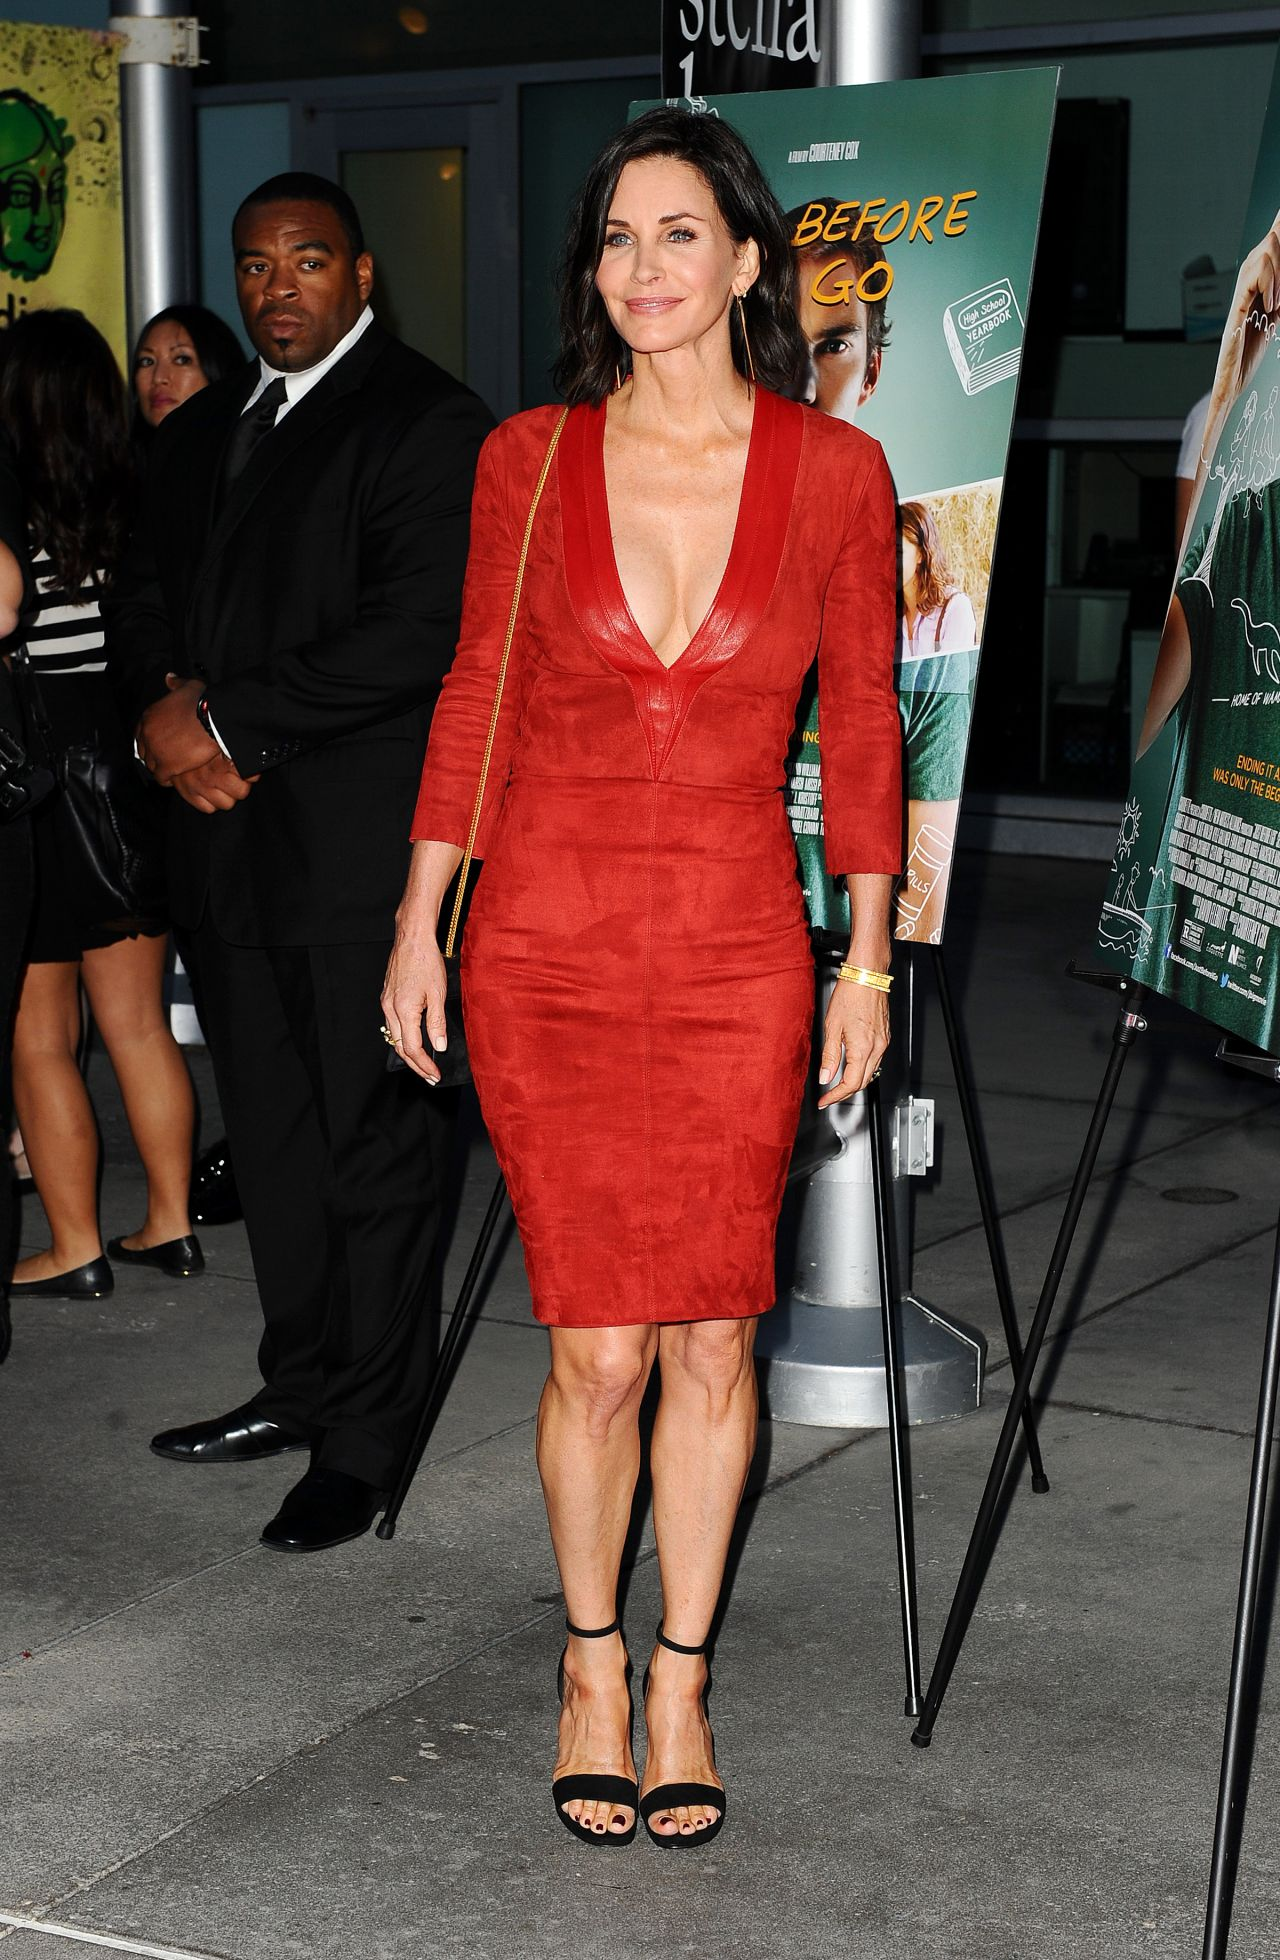 Courteney Cox Just Before I Go Premiere In Hollywood